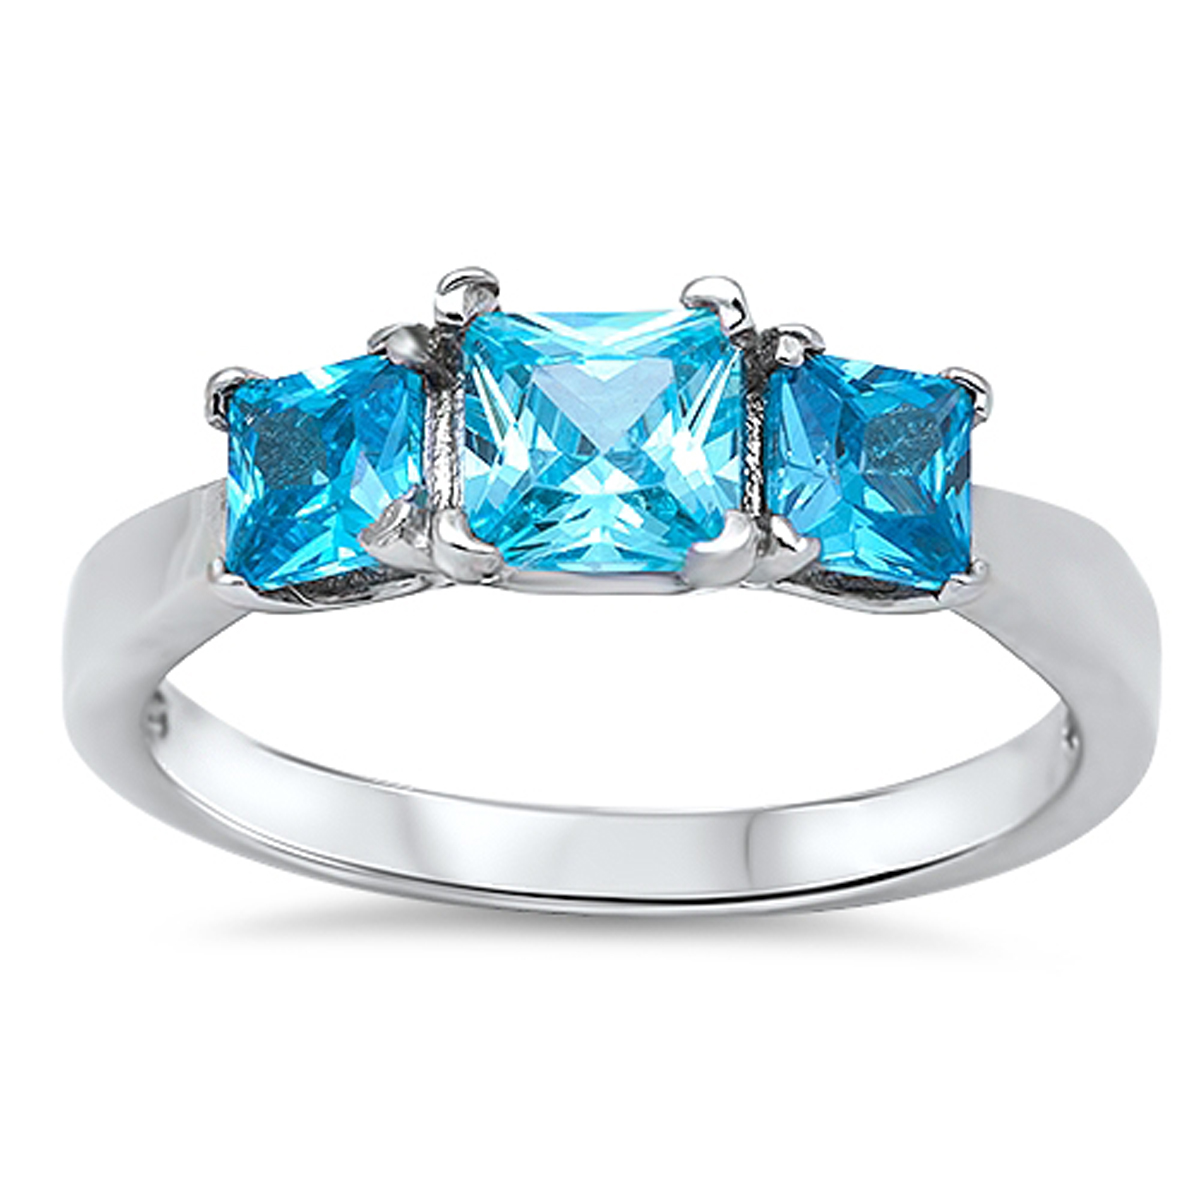 Sterling Silver Women's Flawless Simulated Aquamarine Cubic Zirconia Triple Square Princess Wedding Ring (Sizes 4-12) (Ring Size 6)